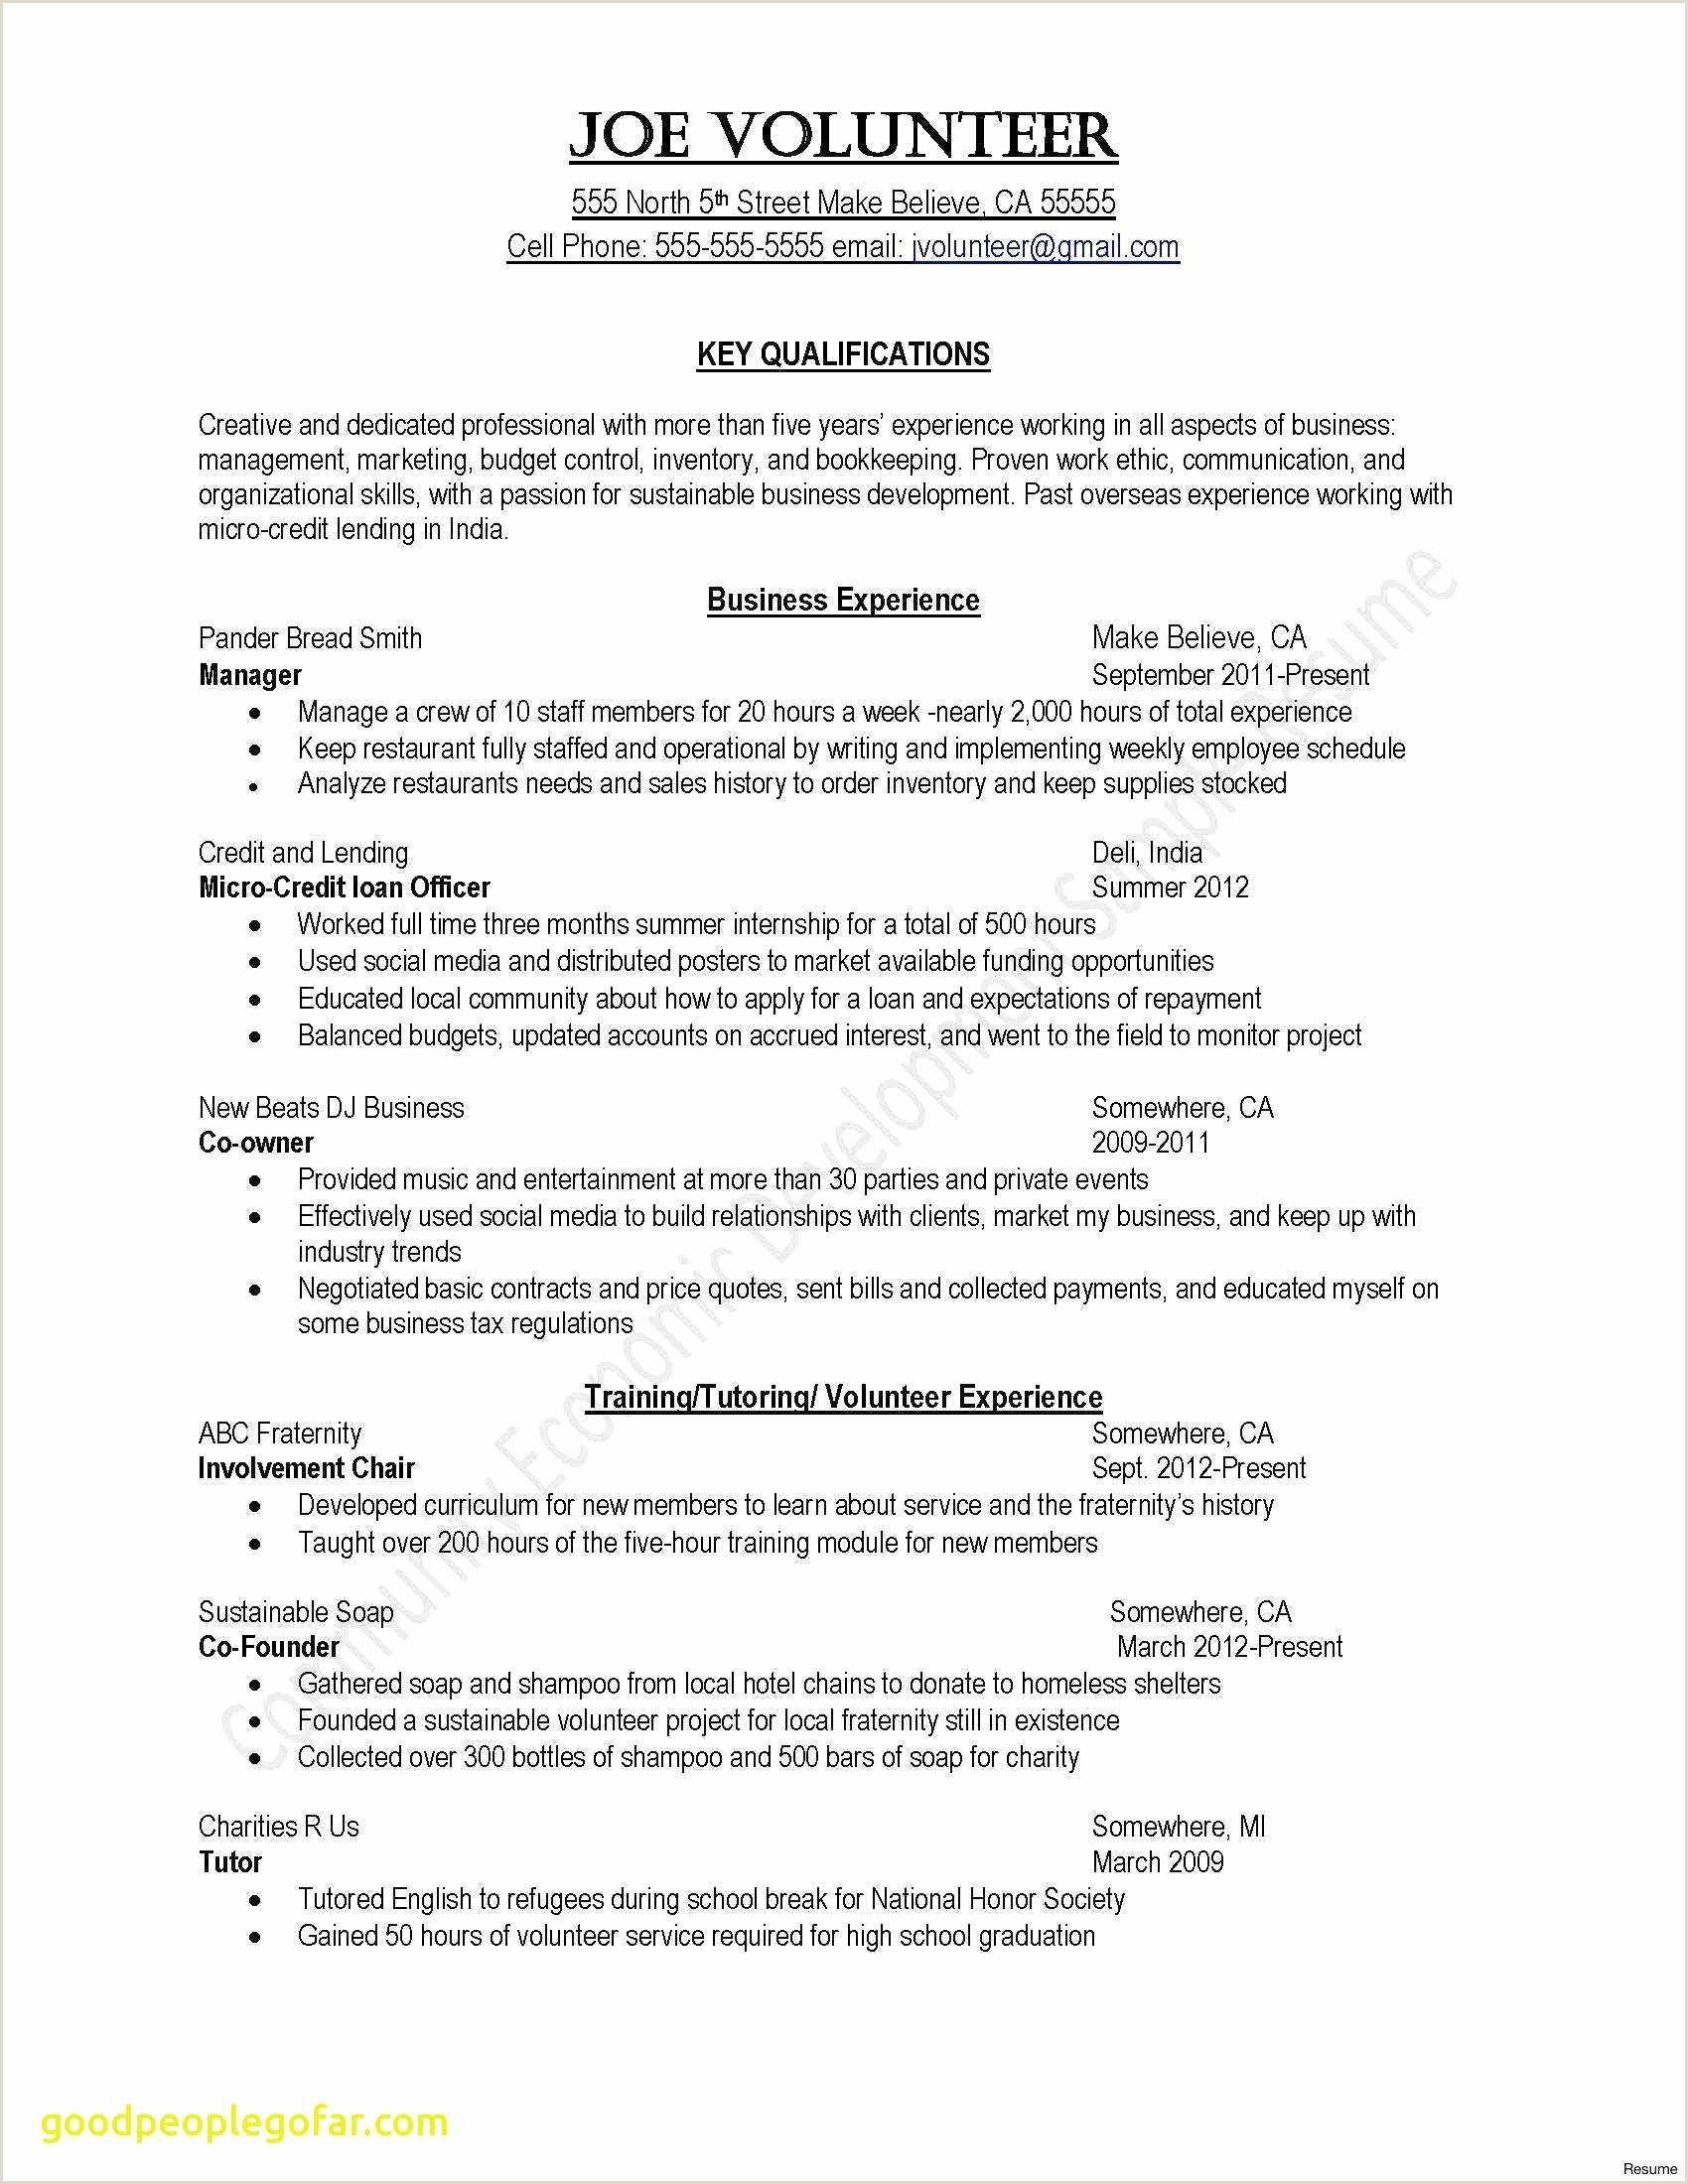 Resume format for Writing Job Quote Infographic Gallery